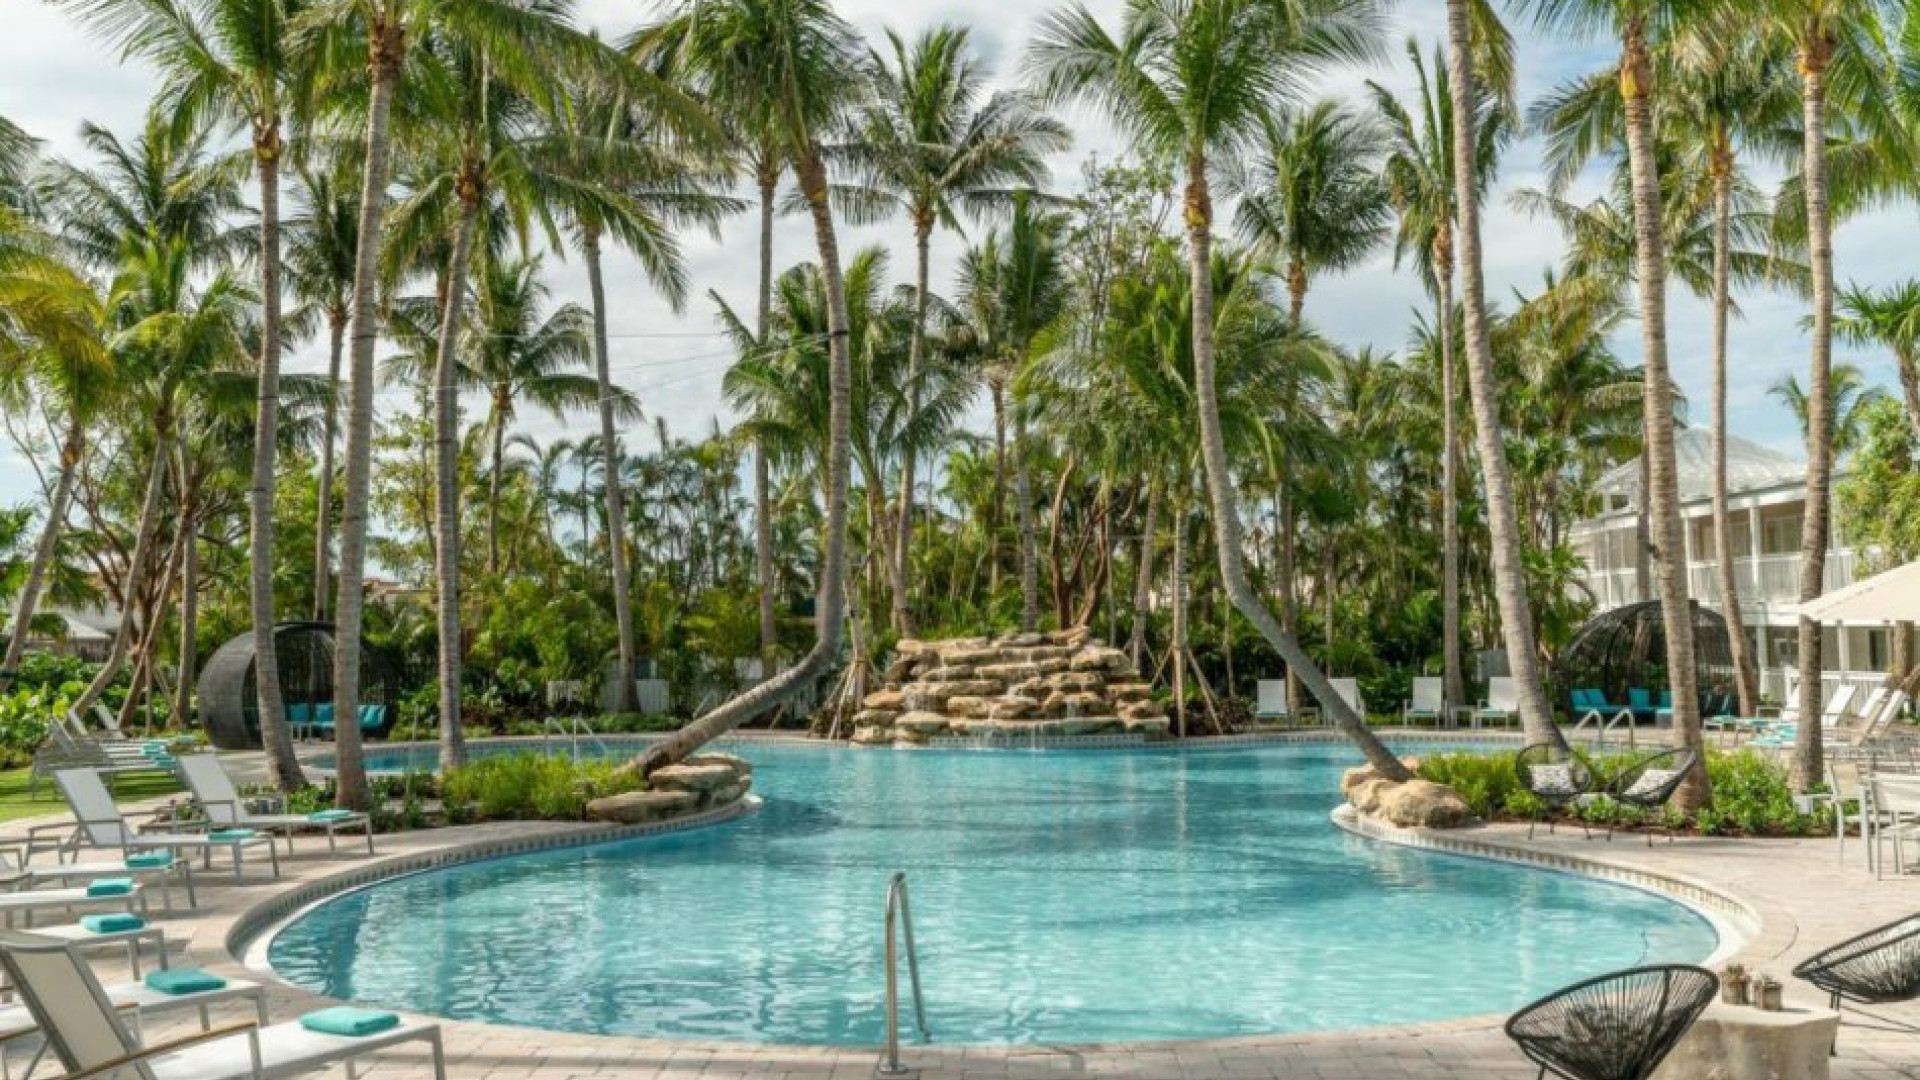 World's Most Awesome Swimming Pools: The Inn at Key West Florida